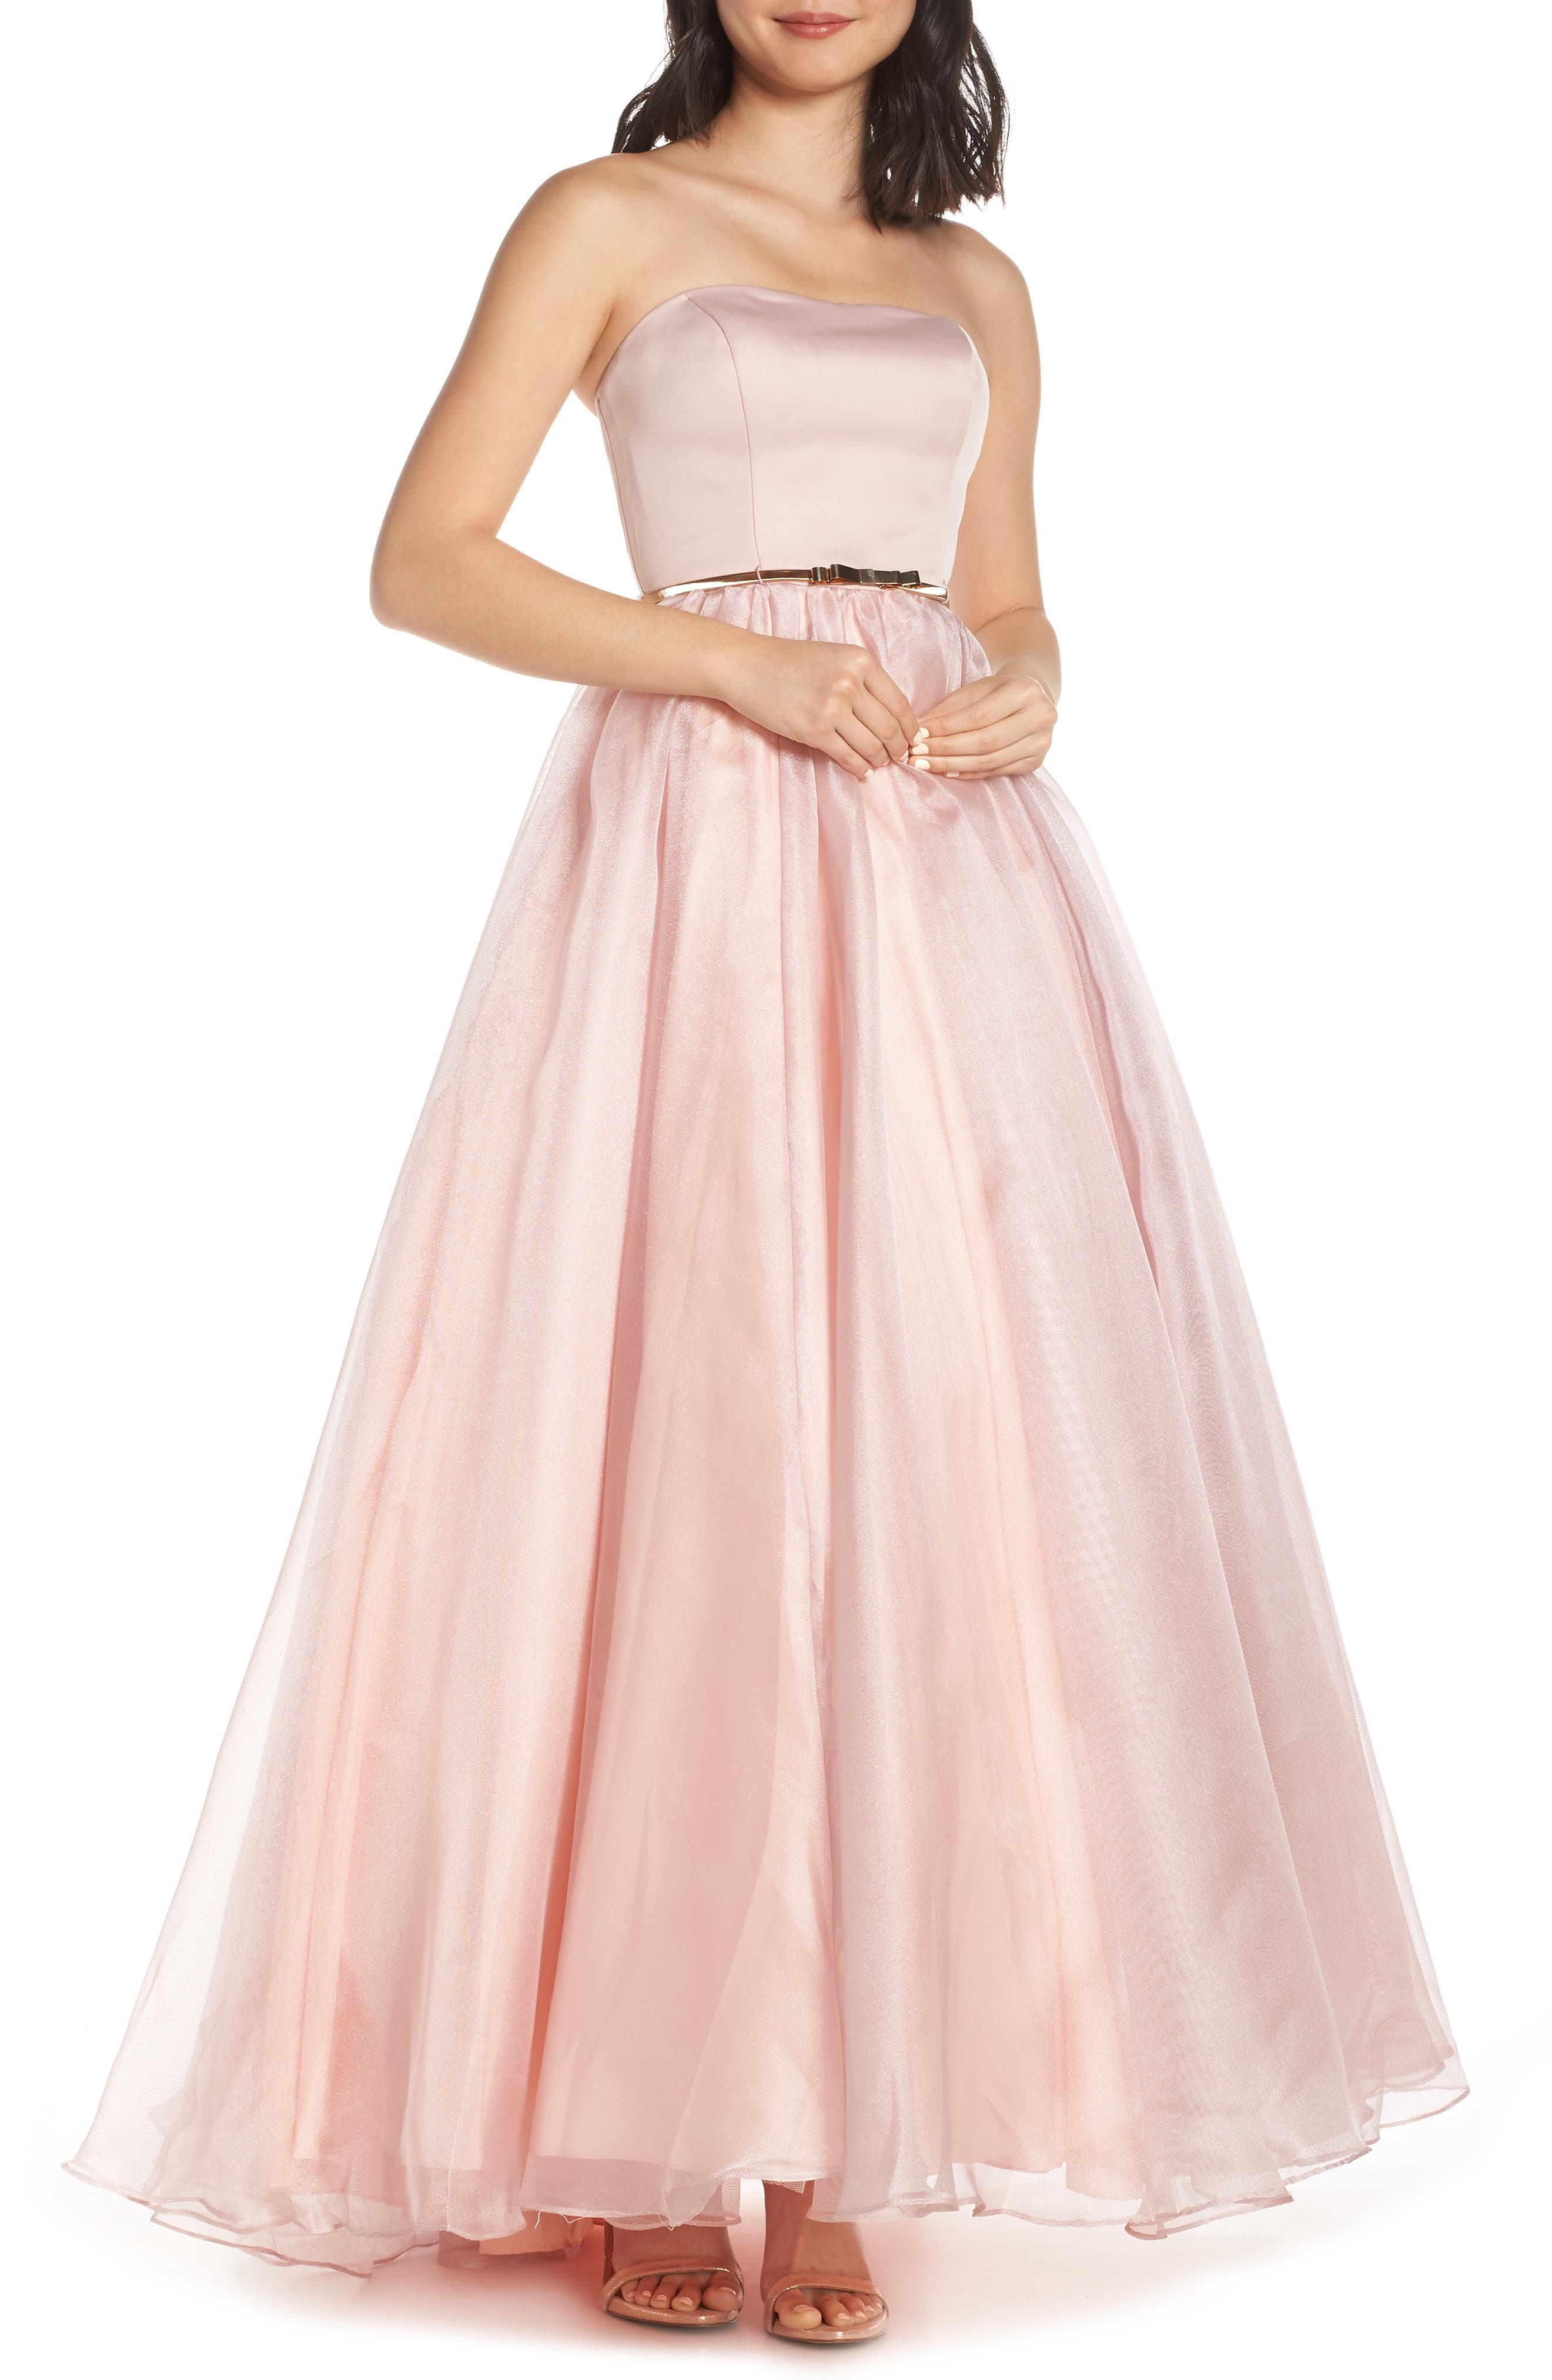 1950s Formal Dresses & Evening Gowns to Buy Womens MAC Duggal Strapless Belted Evening Dress $358.00 AT vintagedancer.com